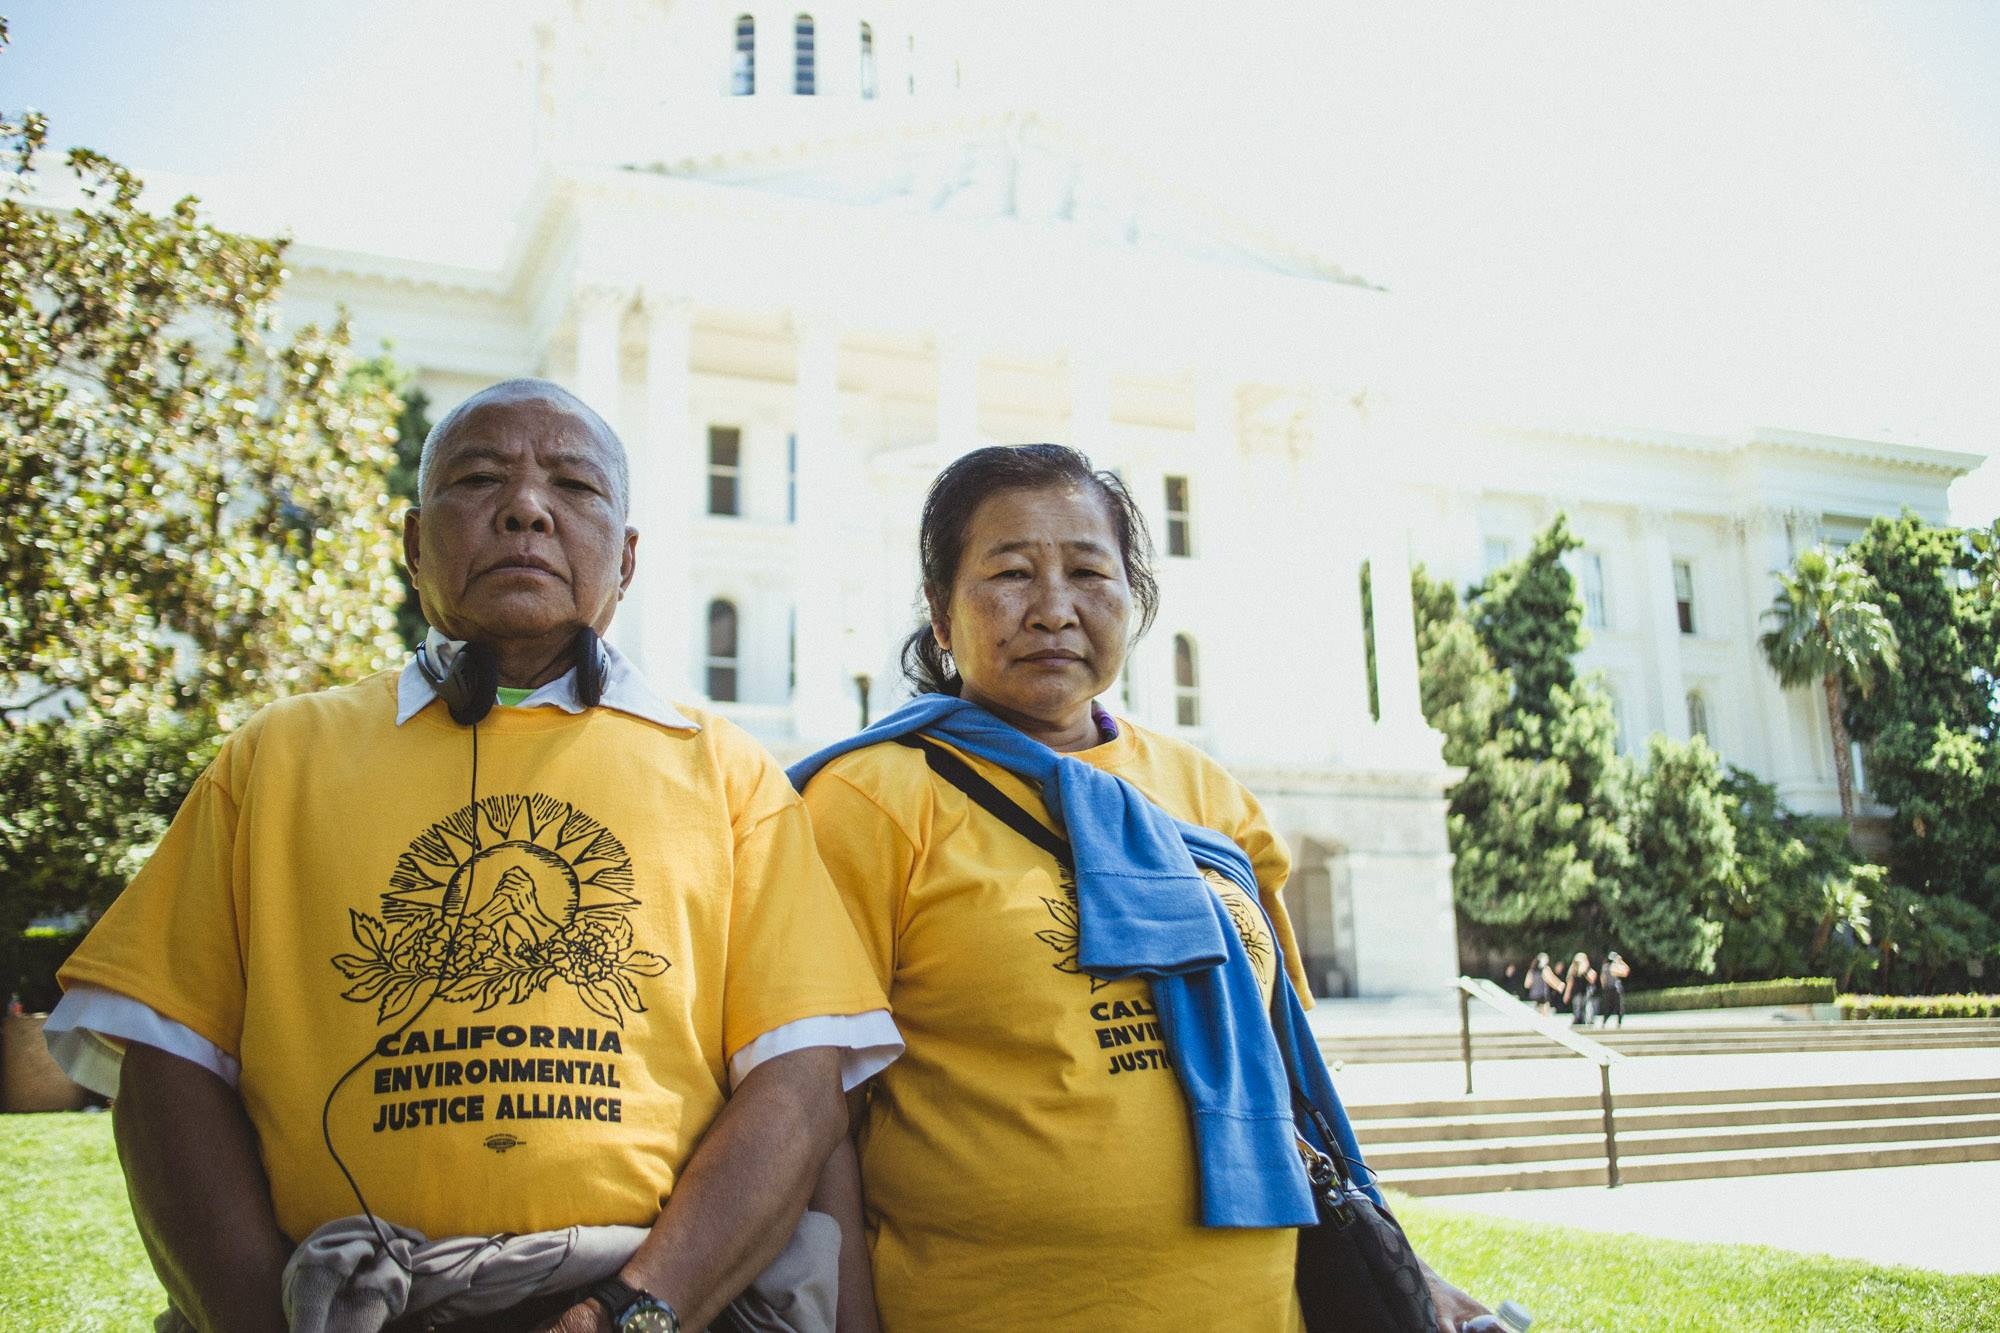 APEN leaders Lipo and Saeng Chanthanasak at the State Capitol in 2014